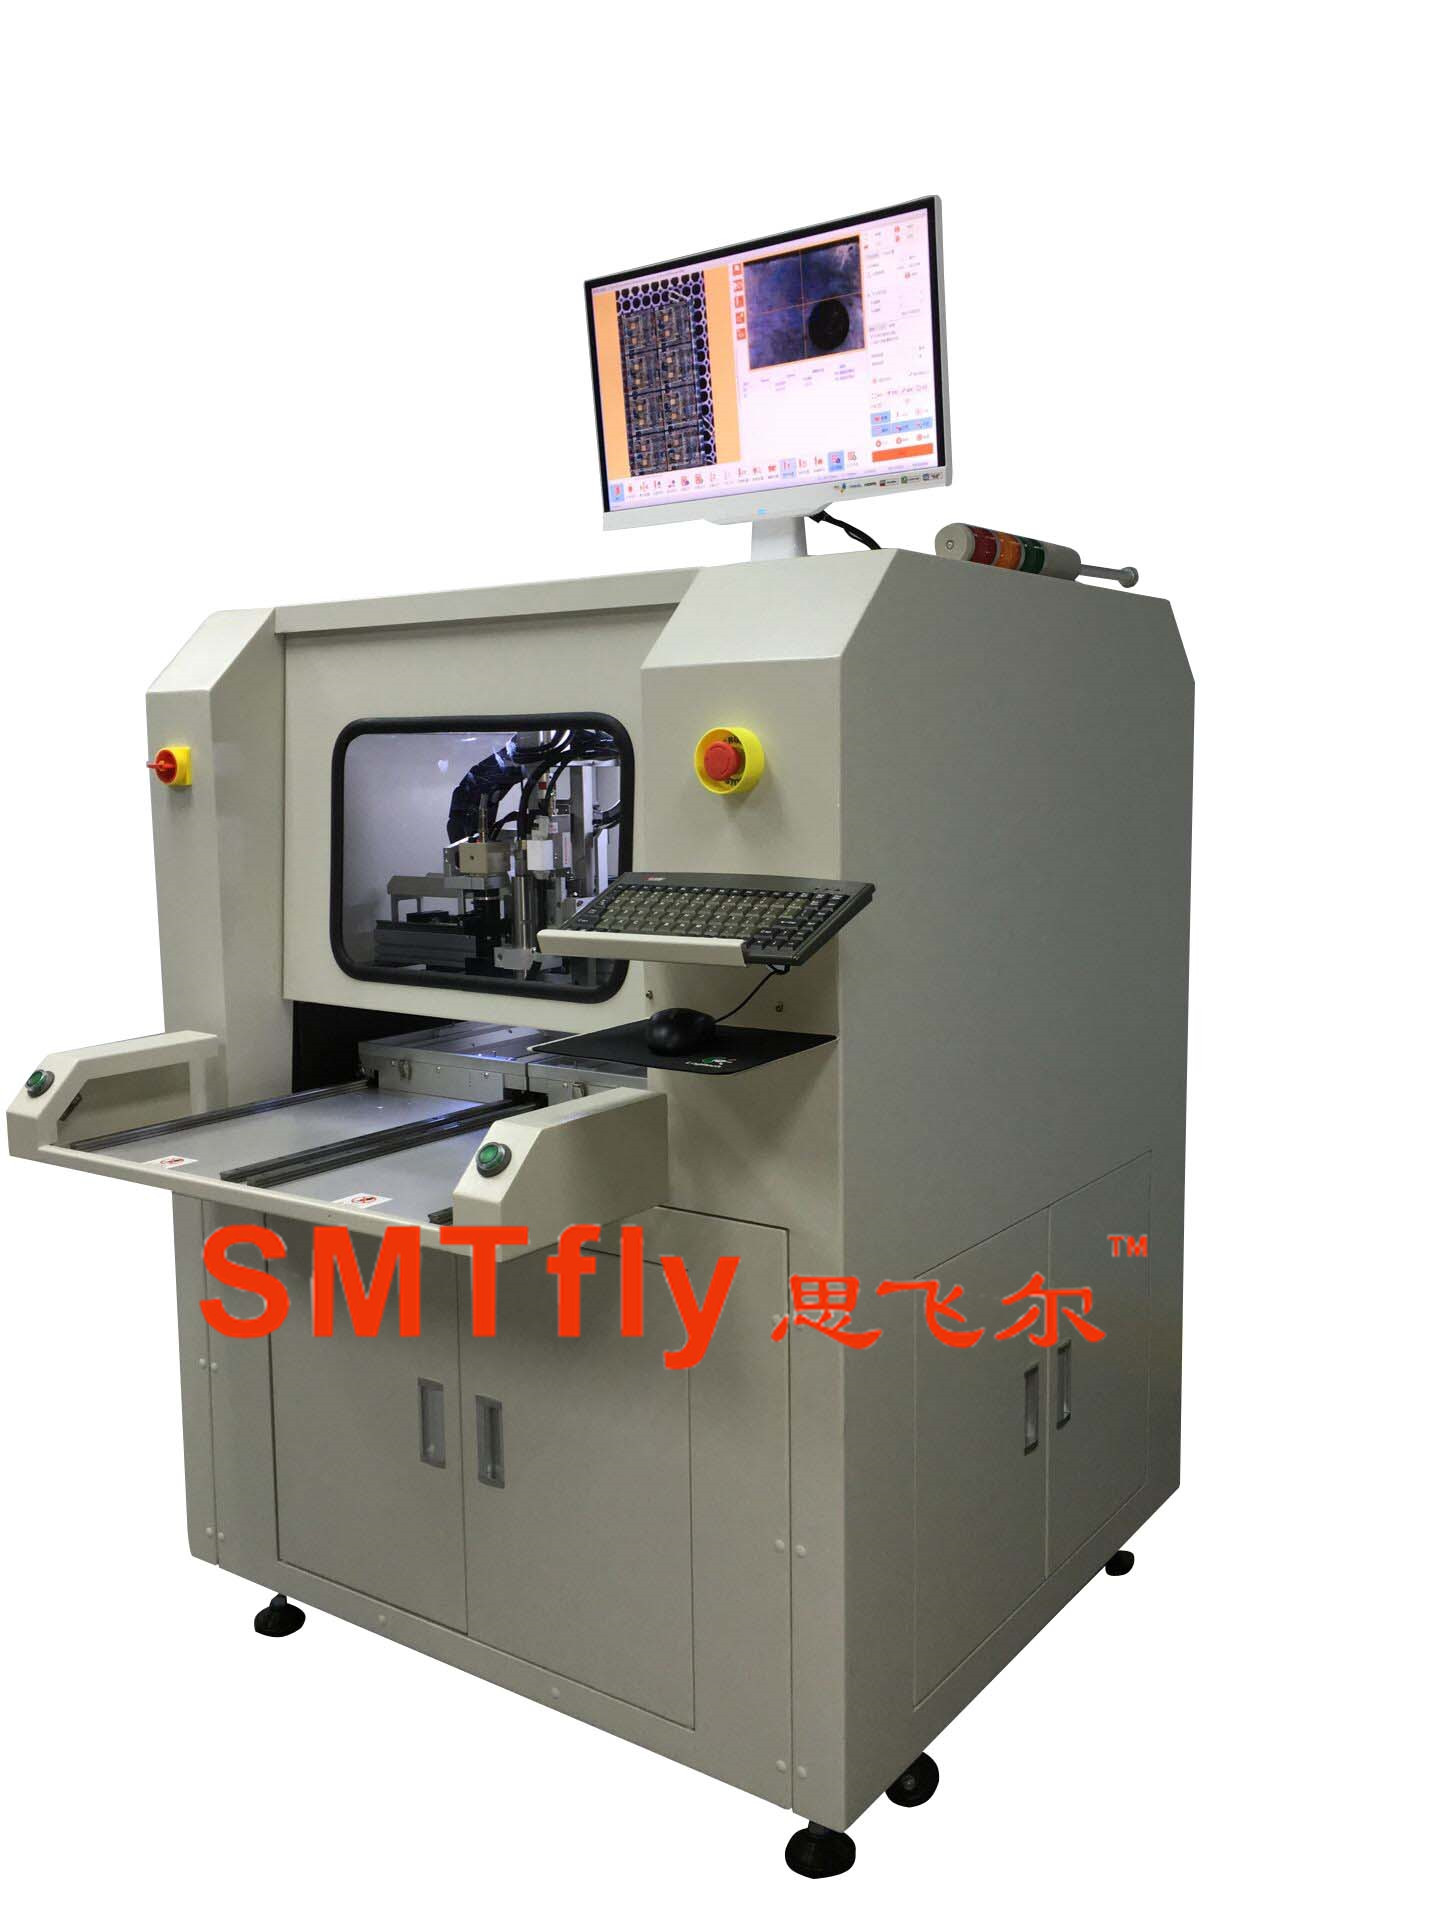 PCB Router Equipment, SMTfly-F02